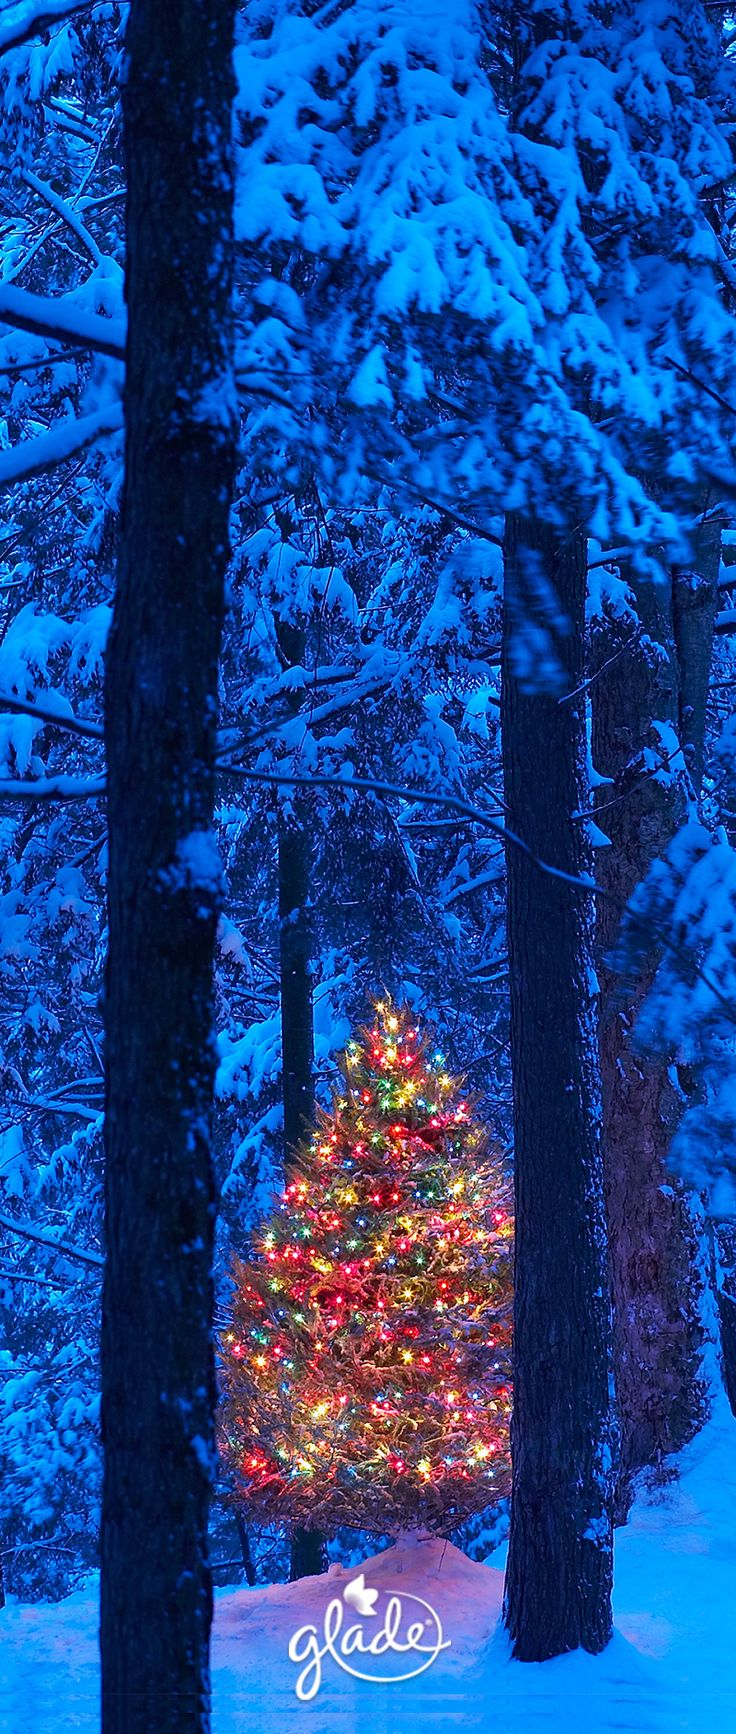 Across a path of freshly fallen snow within a circle of pine trees, waits a lit up tree waiting to be discovered for the first time. Uncover all the joyfulness the holiday season can bring with our Be at Peace scent from our limited edition Winter Collection. Feel Joy. Feel Glade.